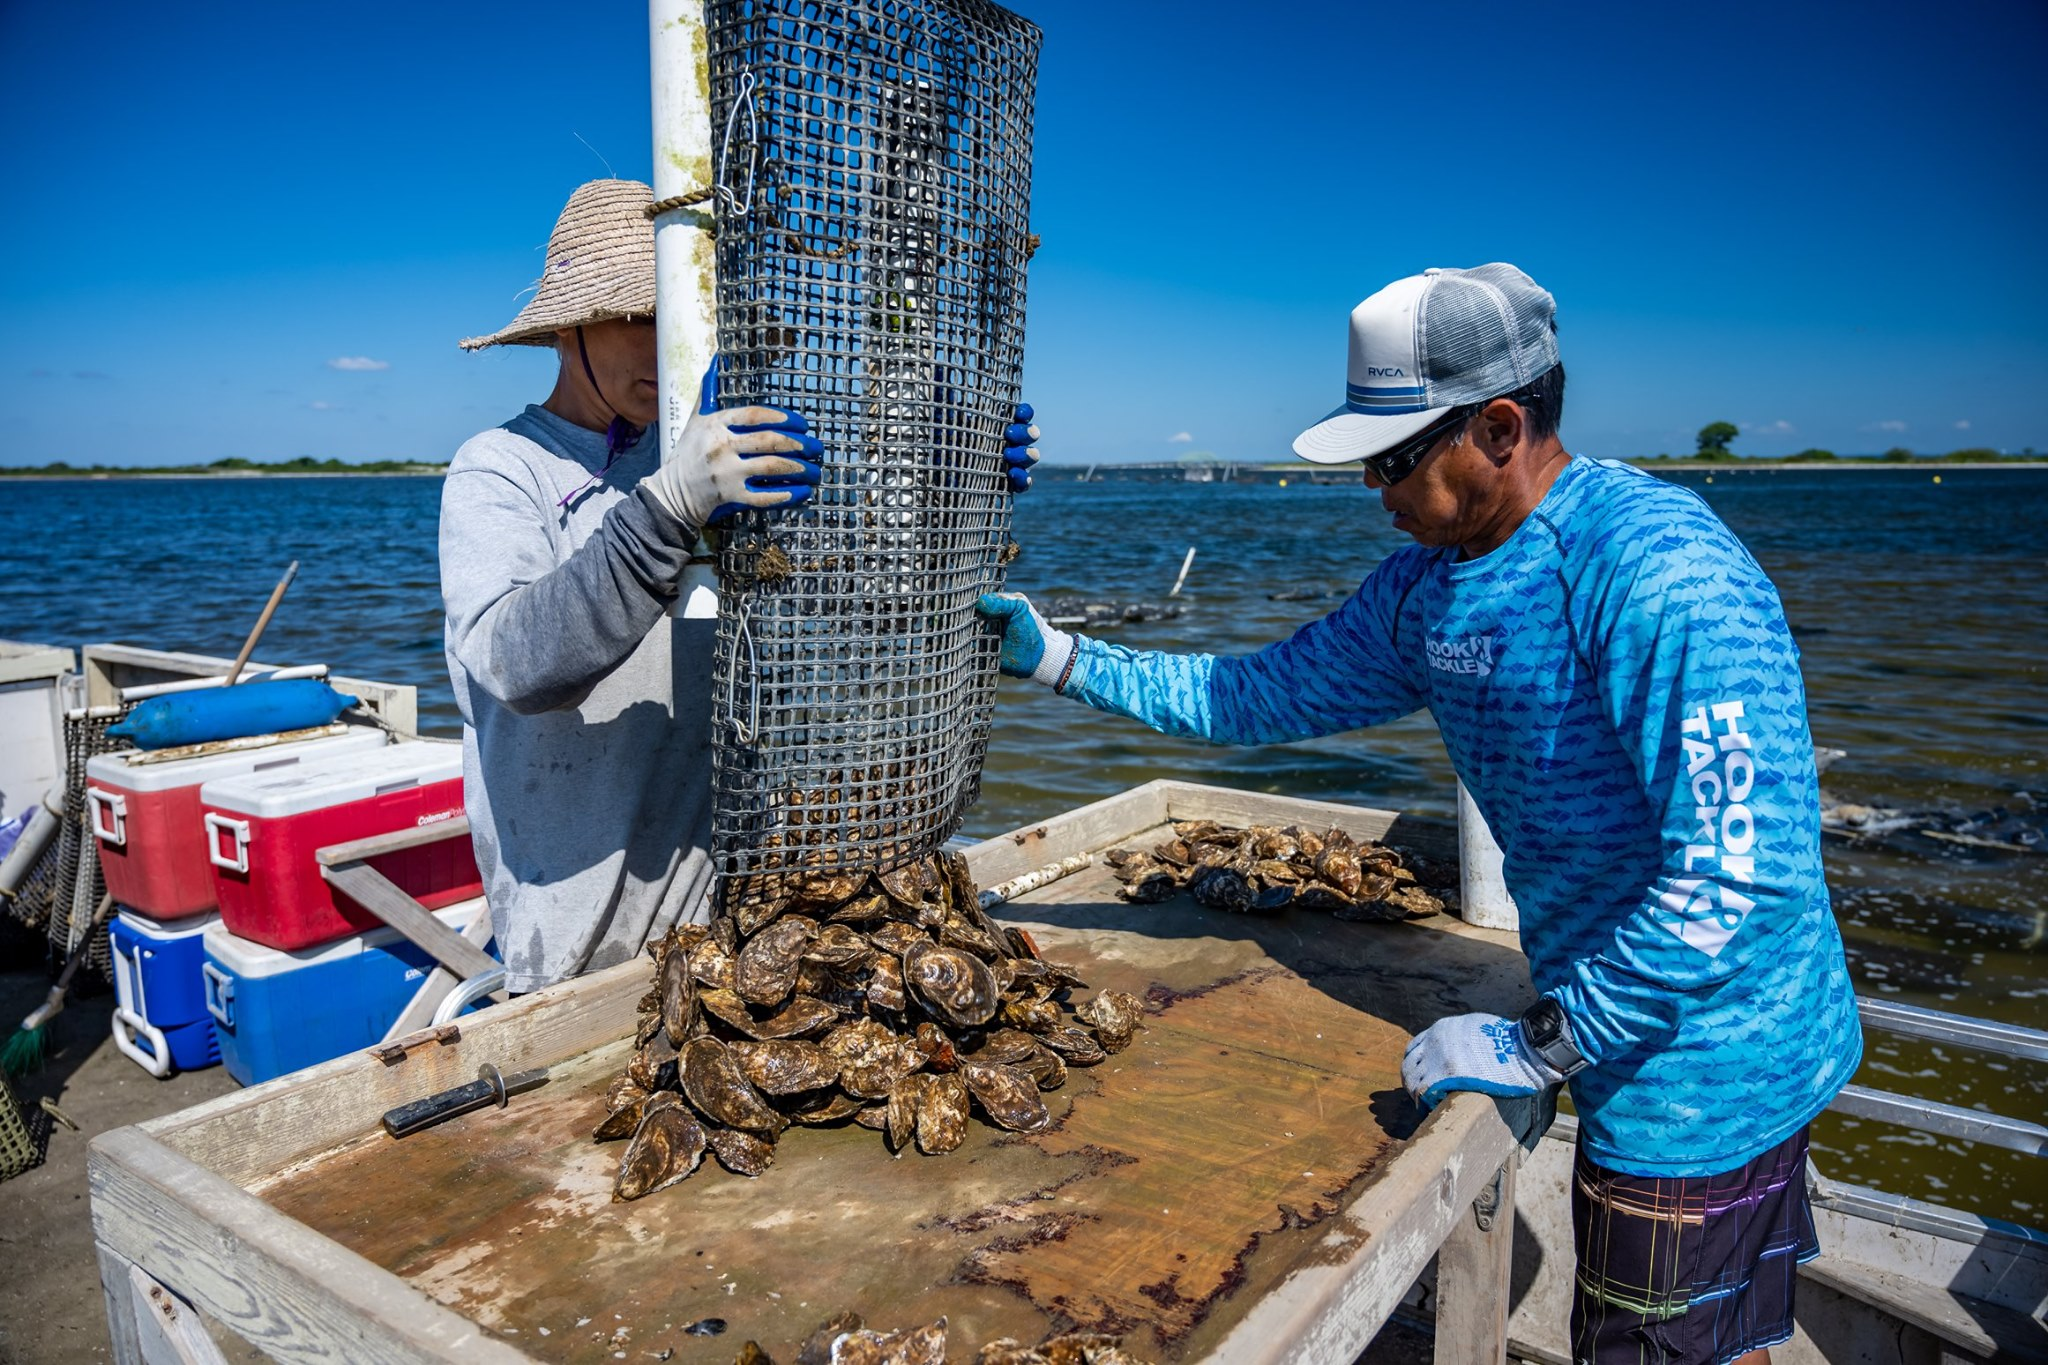 workes separate oysters from net